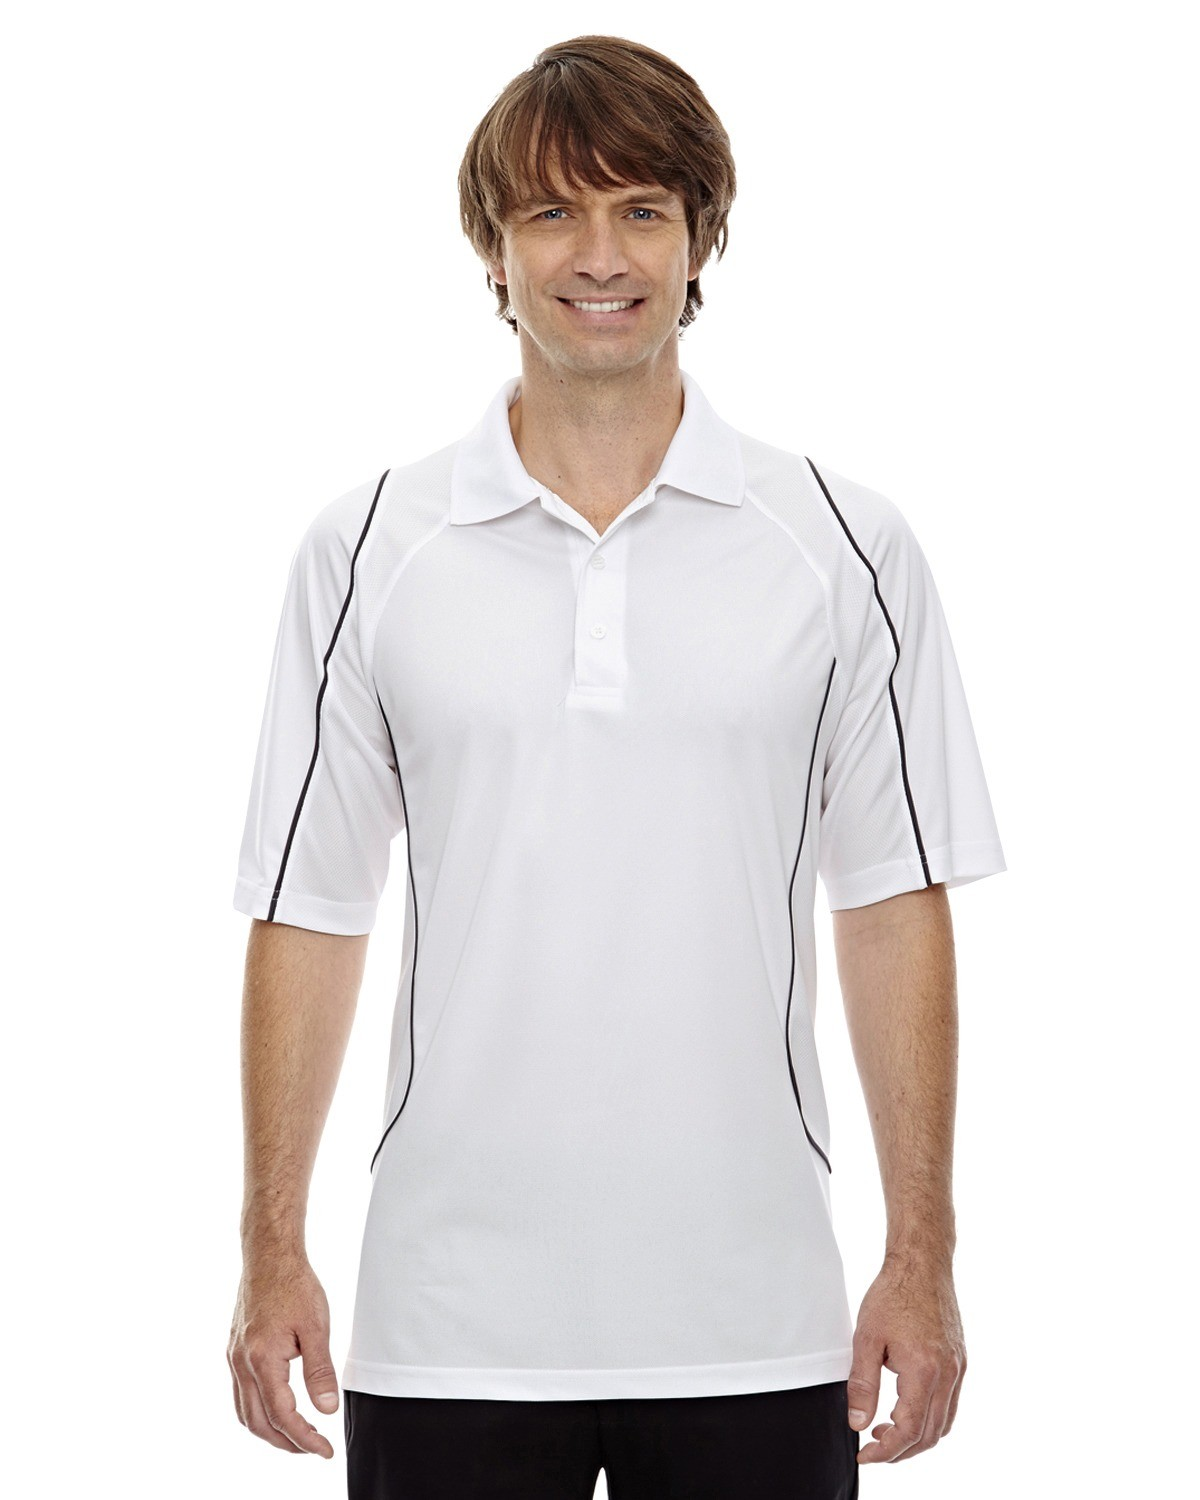 Men's Eperformance™ Velocity Snag Protection Colorblock Polo with Piping